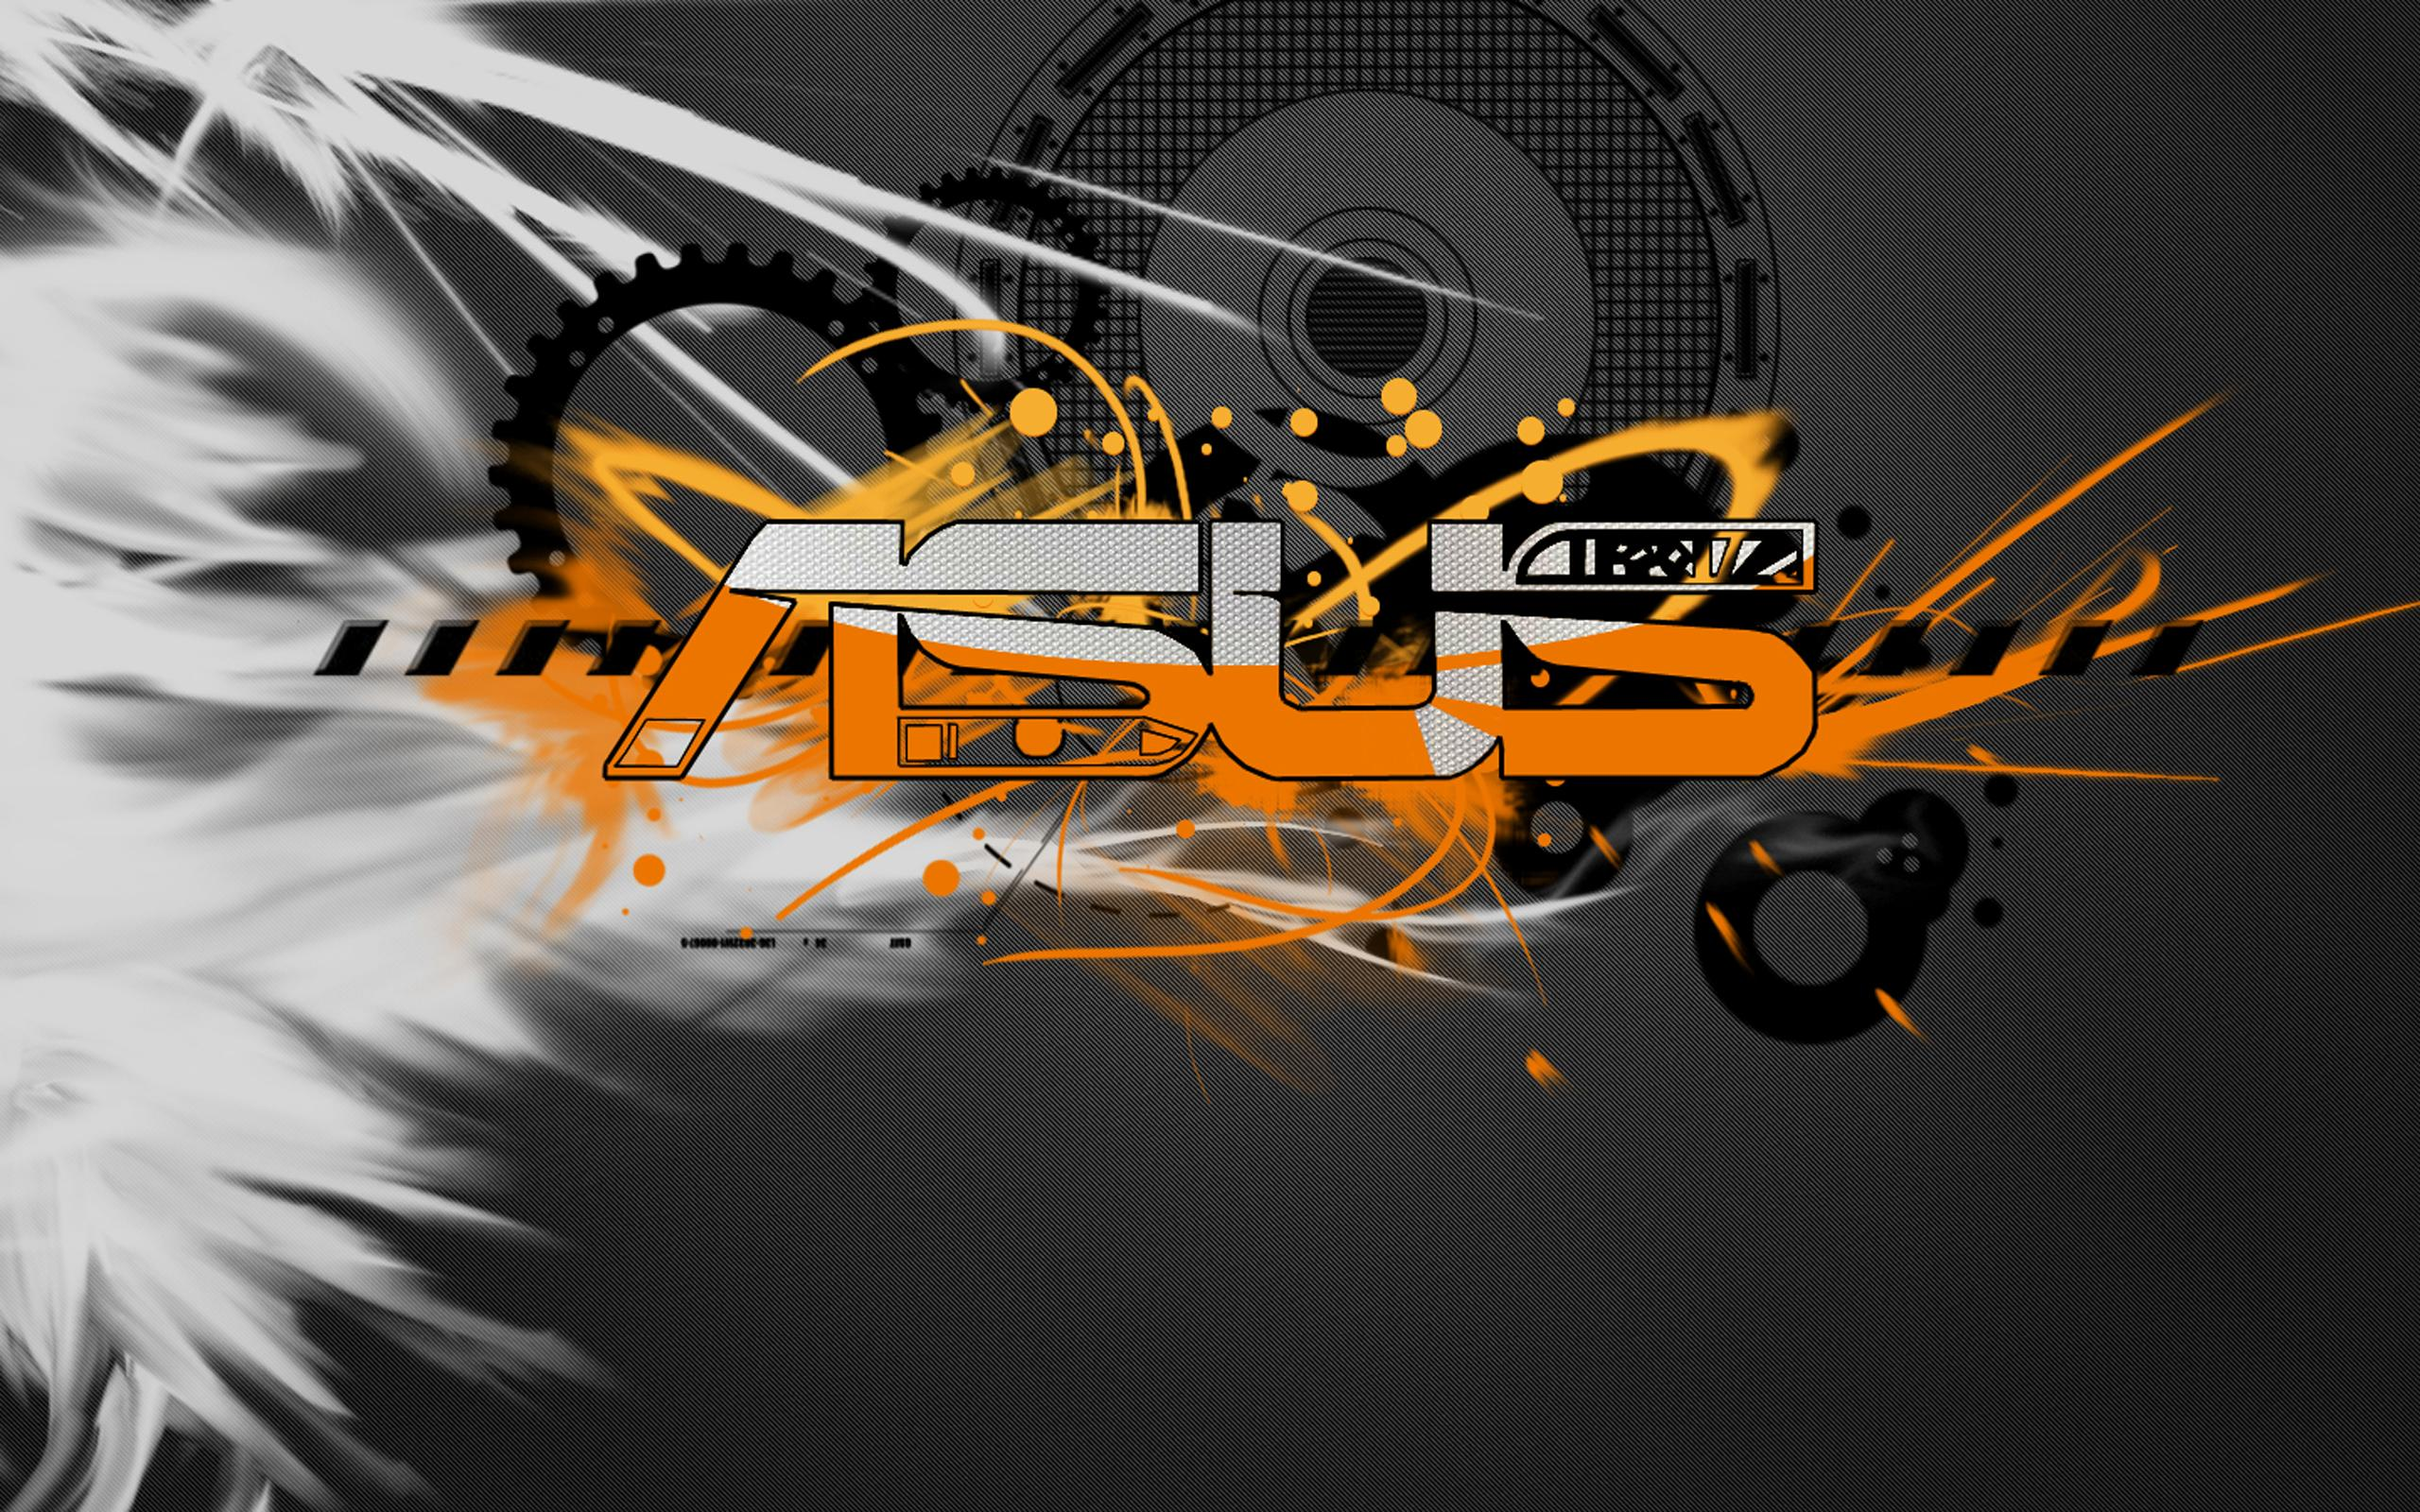 Asus Wallpaper - Background Asus , HD Wallpaper & Backgrounds